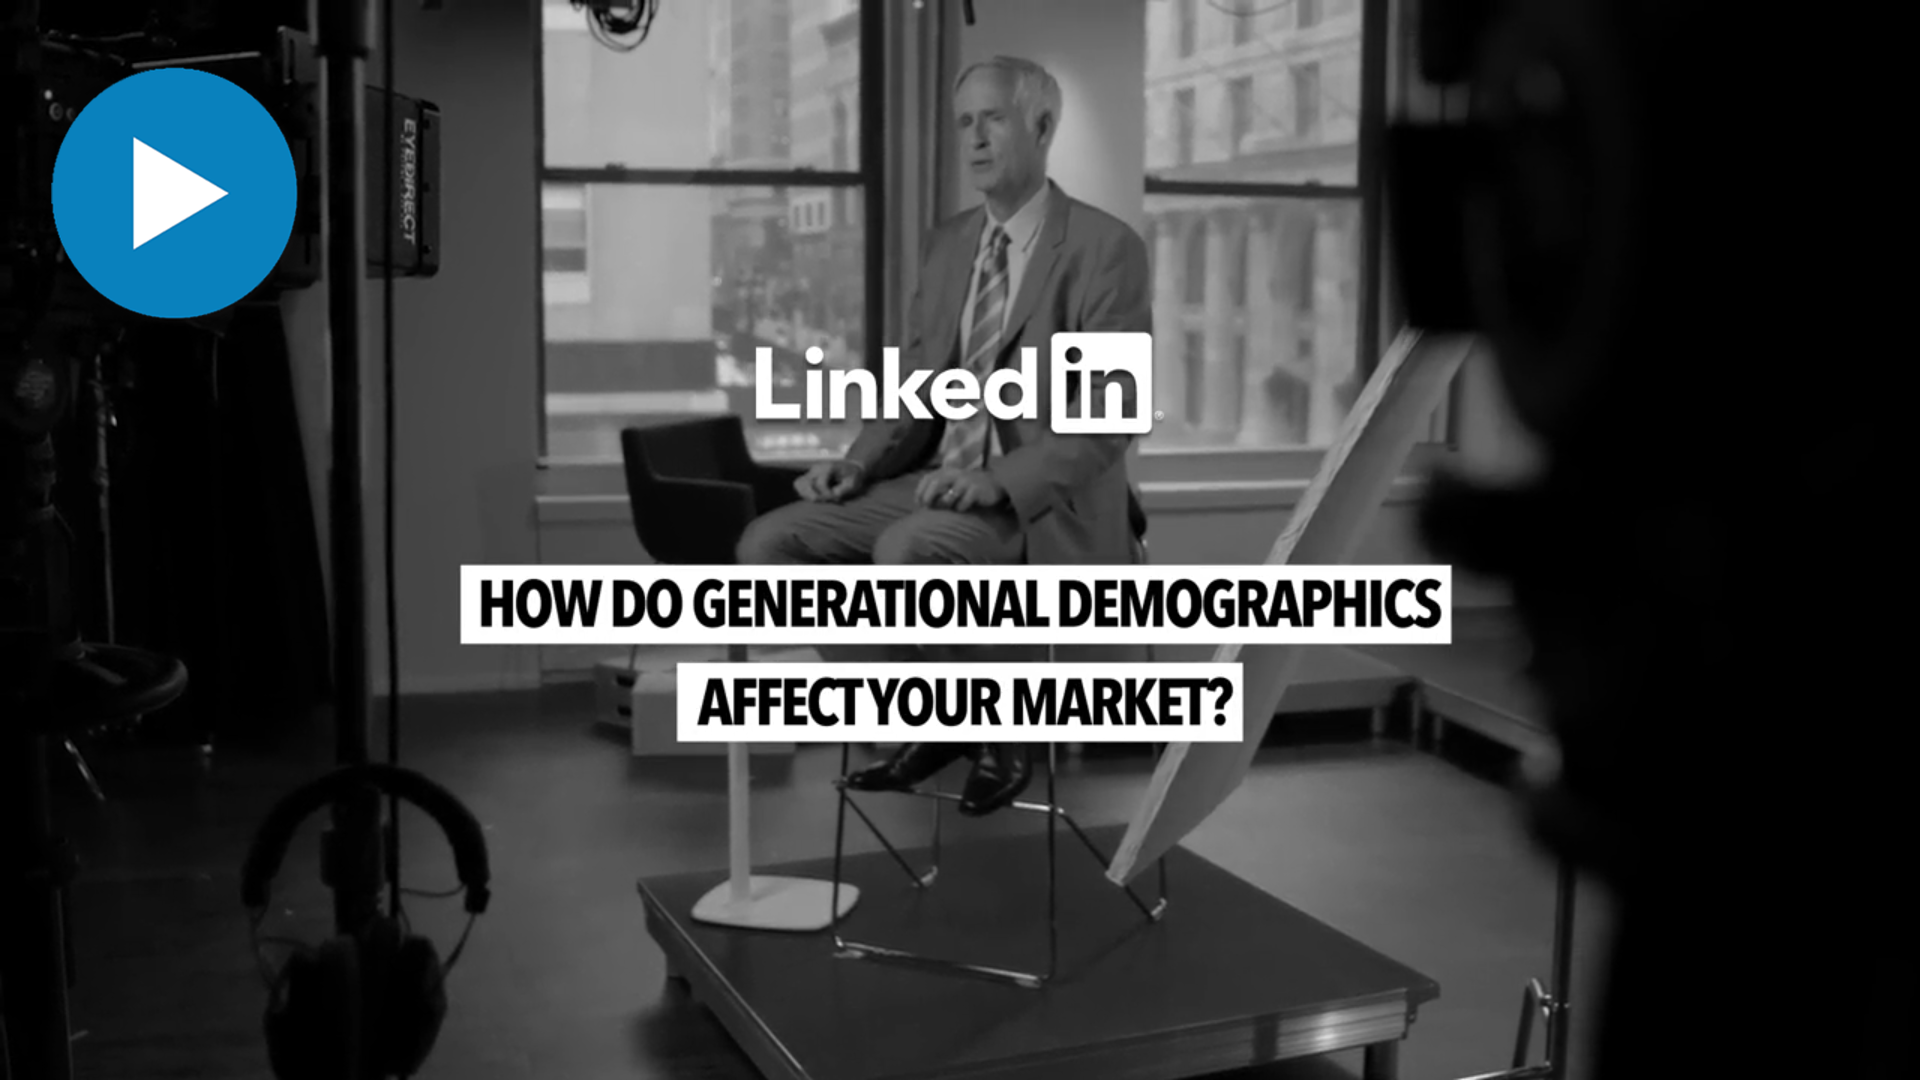 LinkedIn's Video on Our Generational Definitions | DesignLens